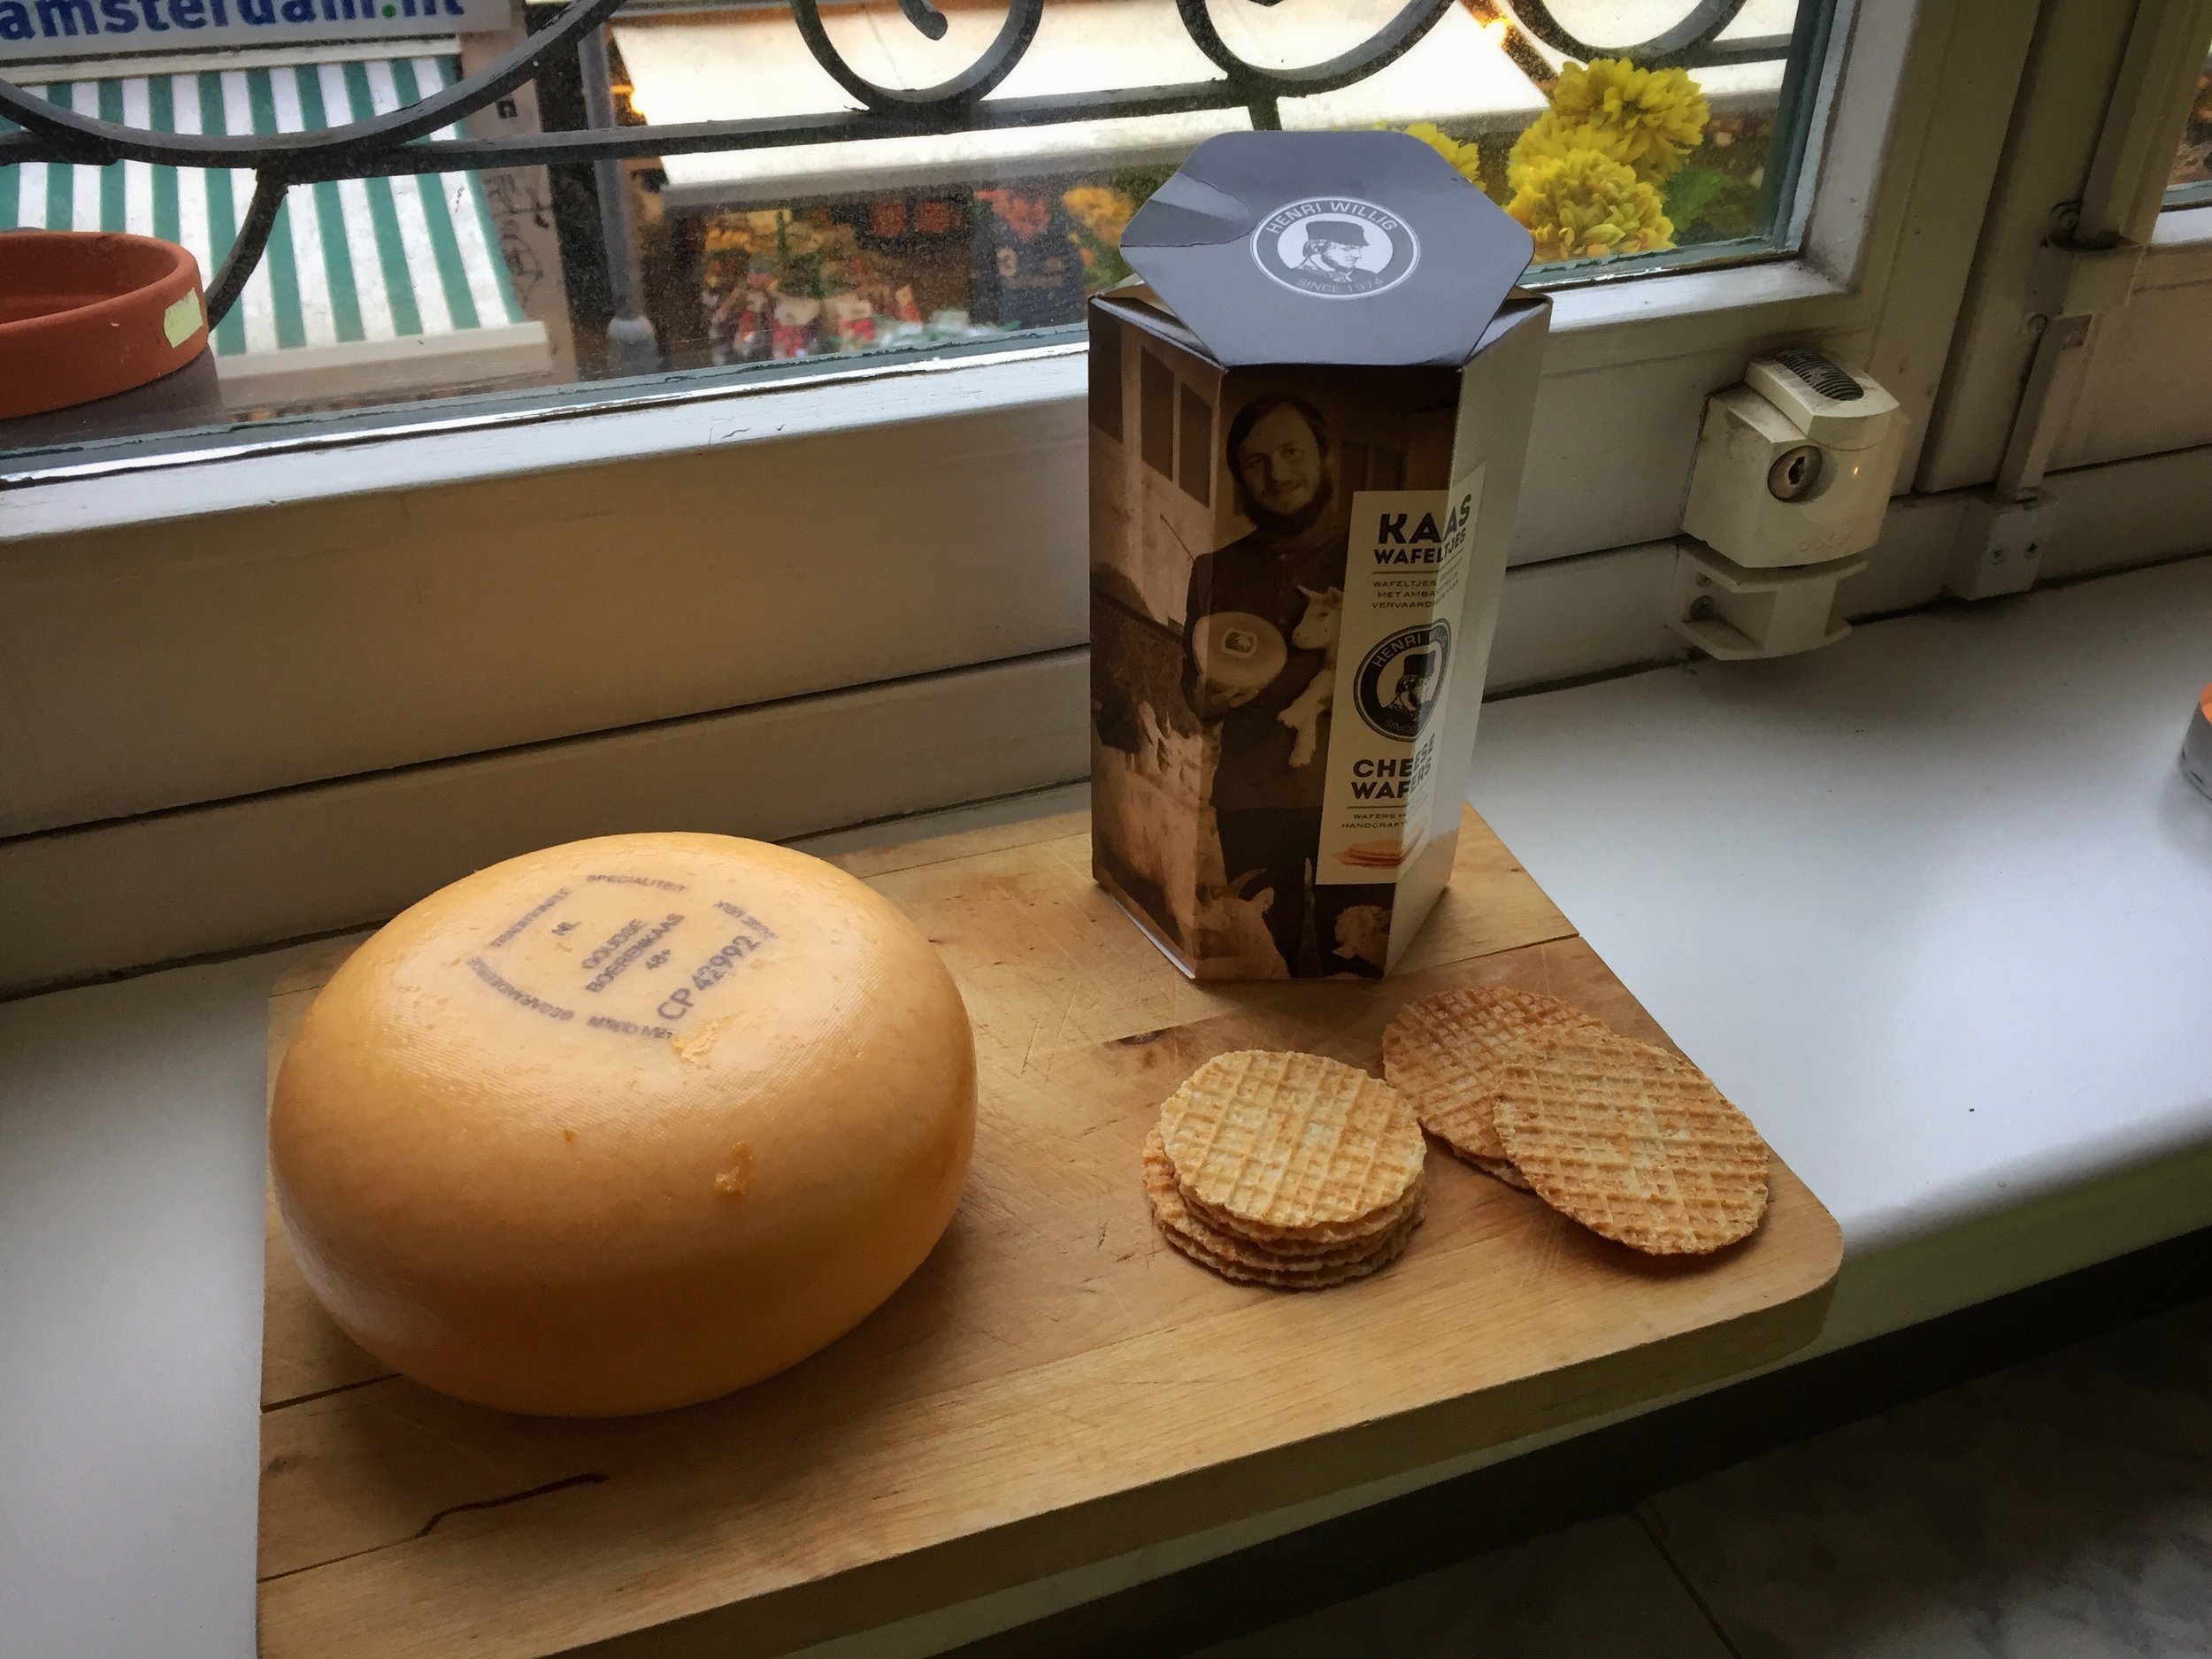 a raw, creamy cheese wheel made its way home with me